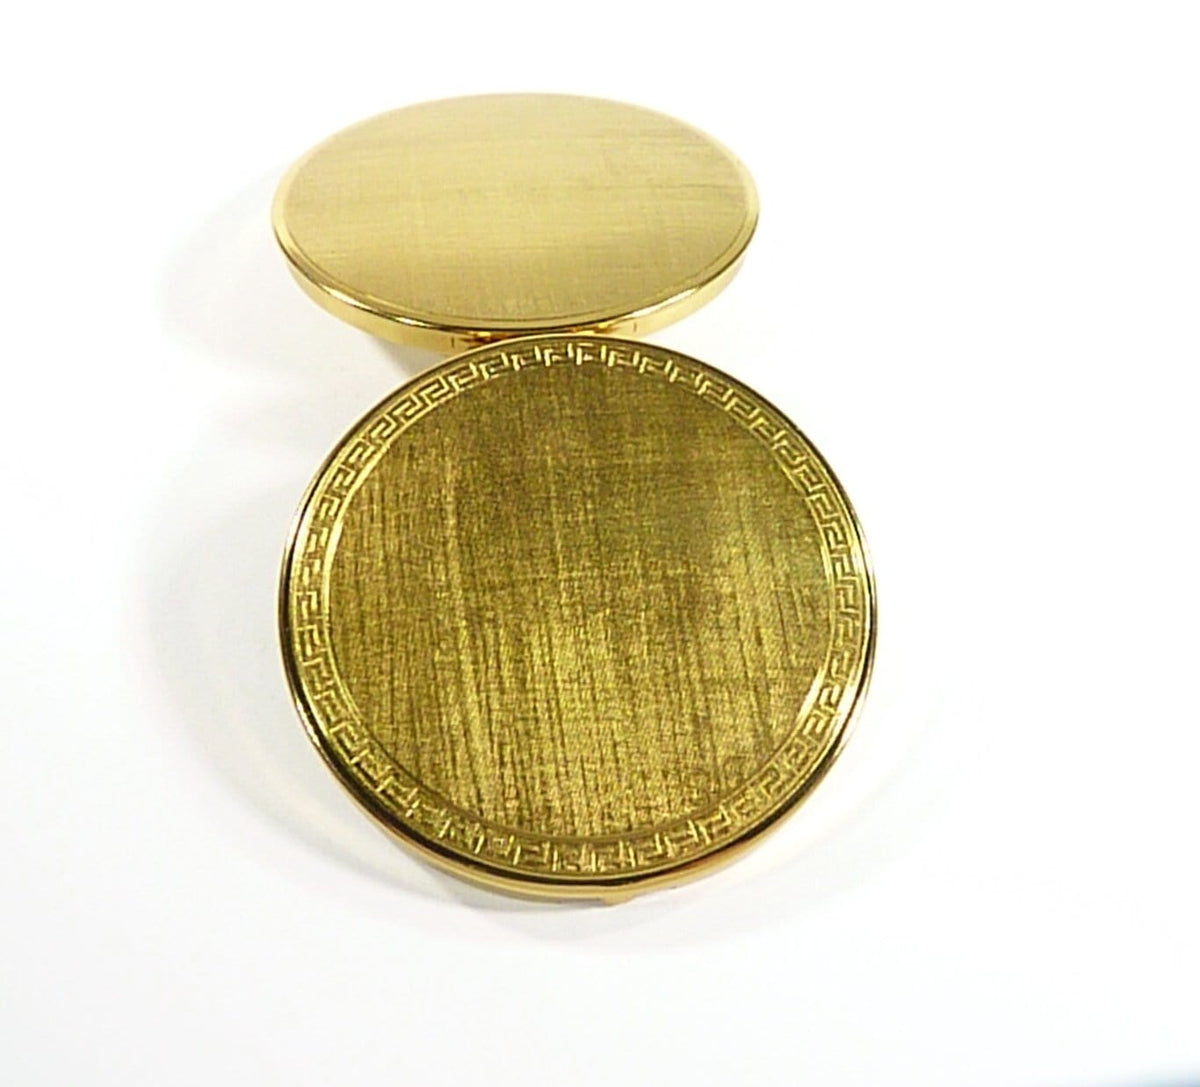 Unused Compact Case For Loose Powder